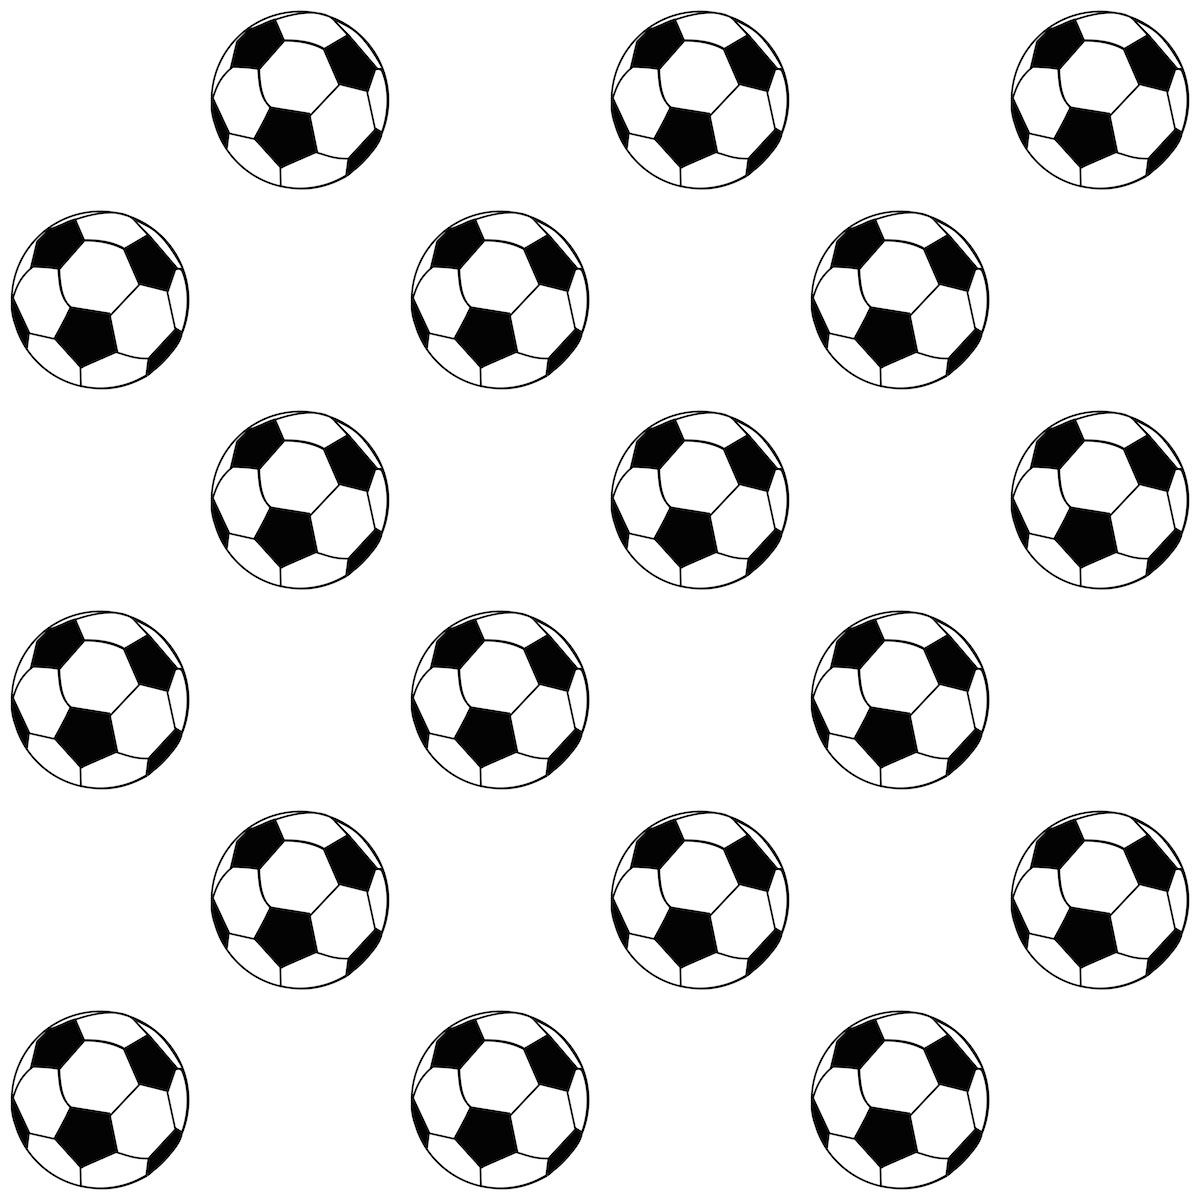 Intrepid image with soccer ball printable